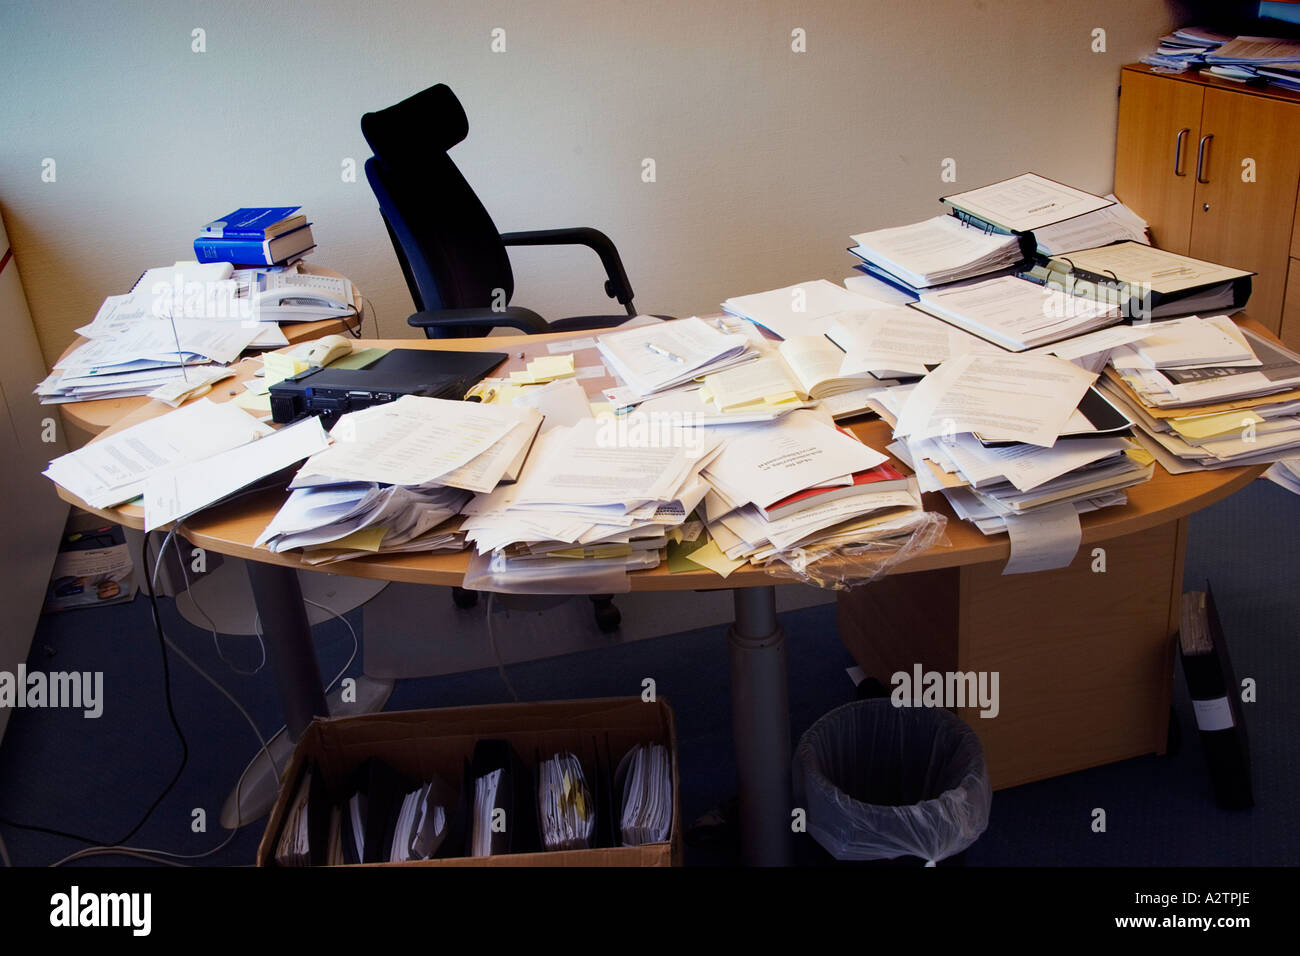 messy desk at office - Stock Image